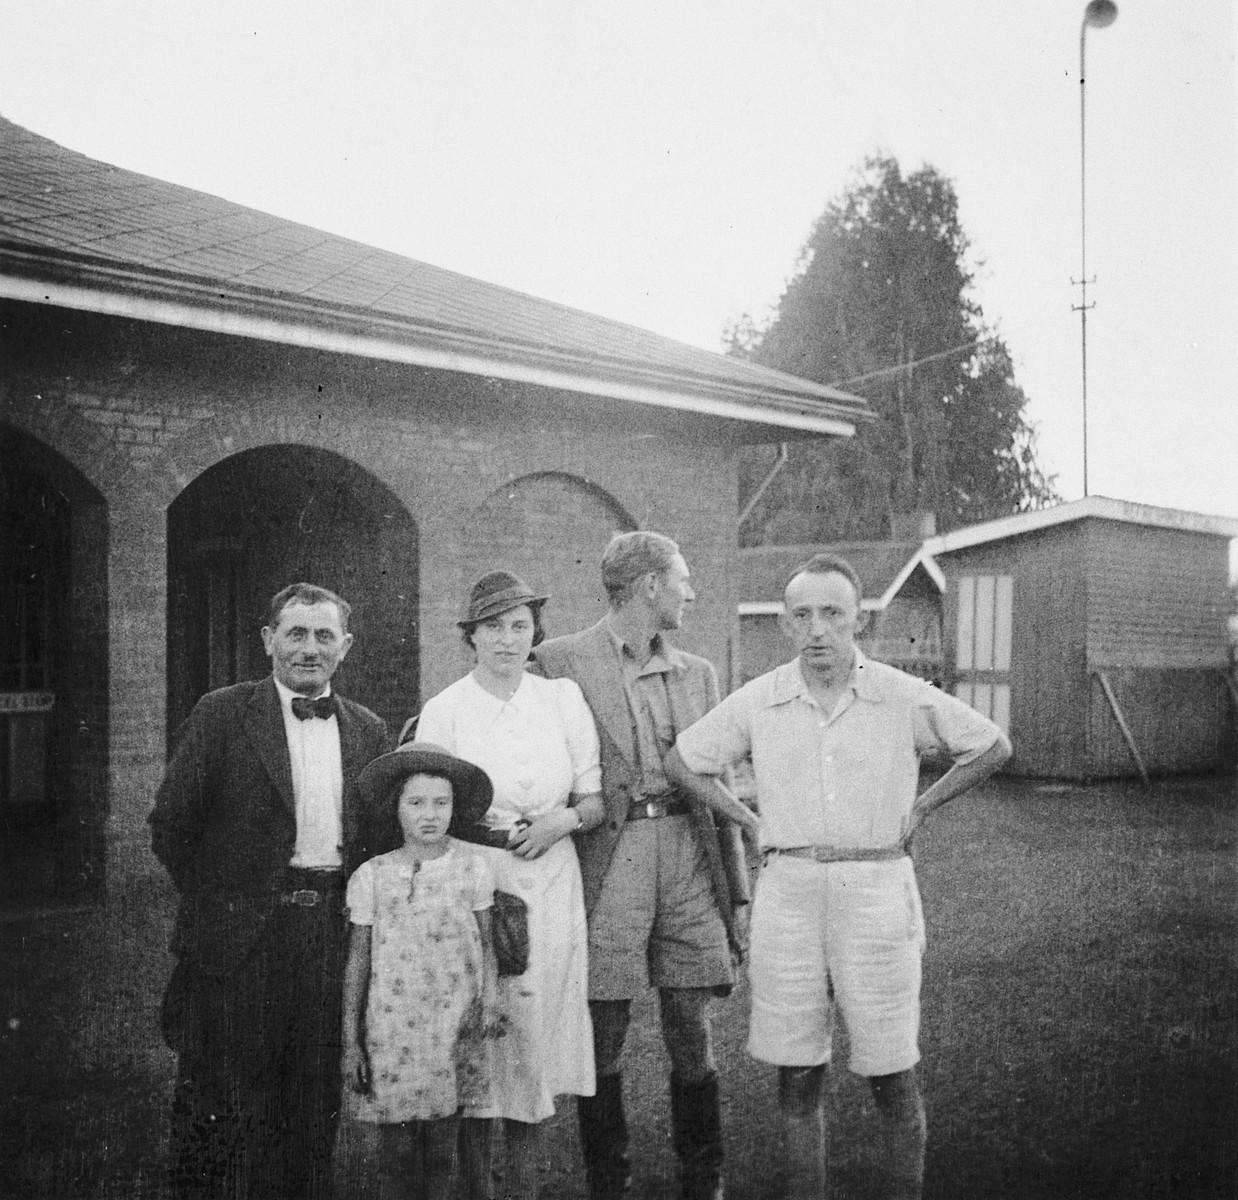 Members of a Jewish refugee family pose with friends on their farm in Kenya.  Pictured are members of the Zweig family. The daughter, Stefanie Zweig, is in the front.